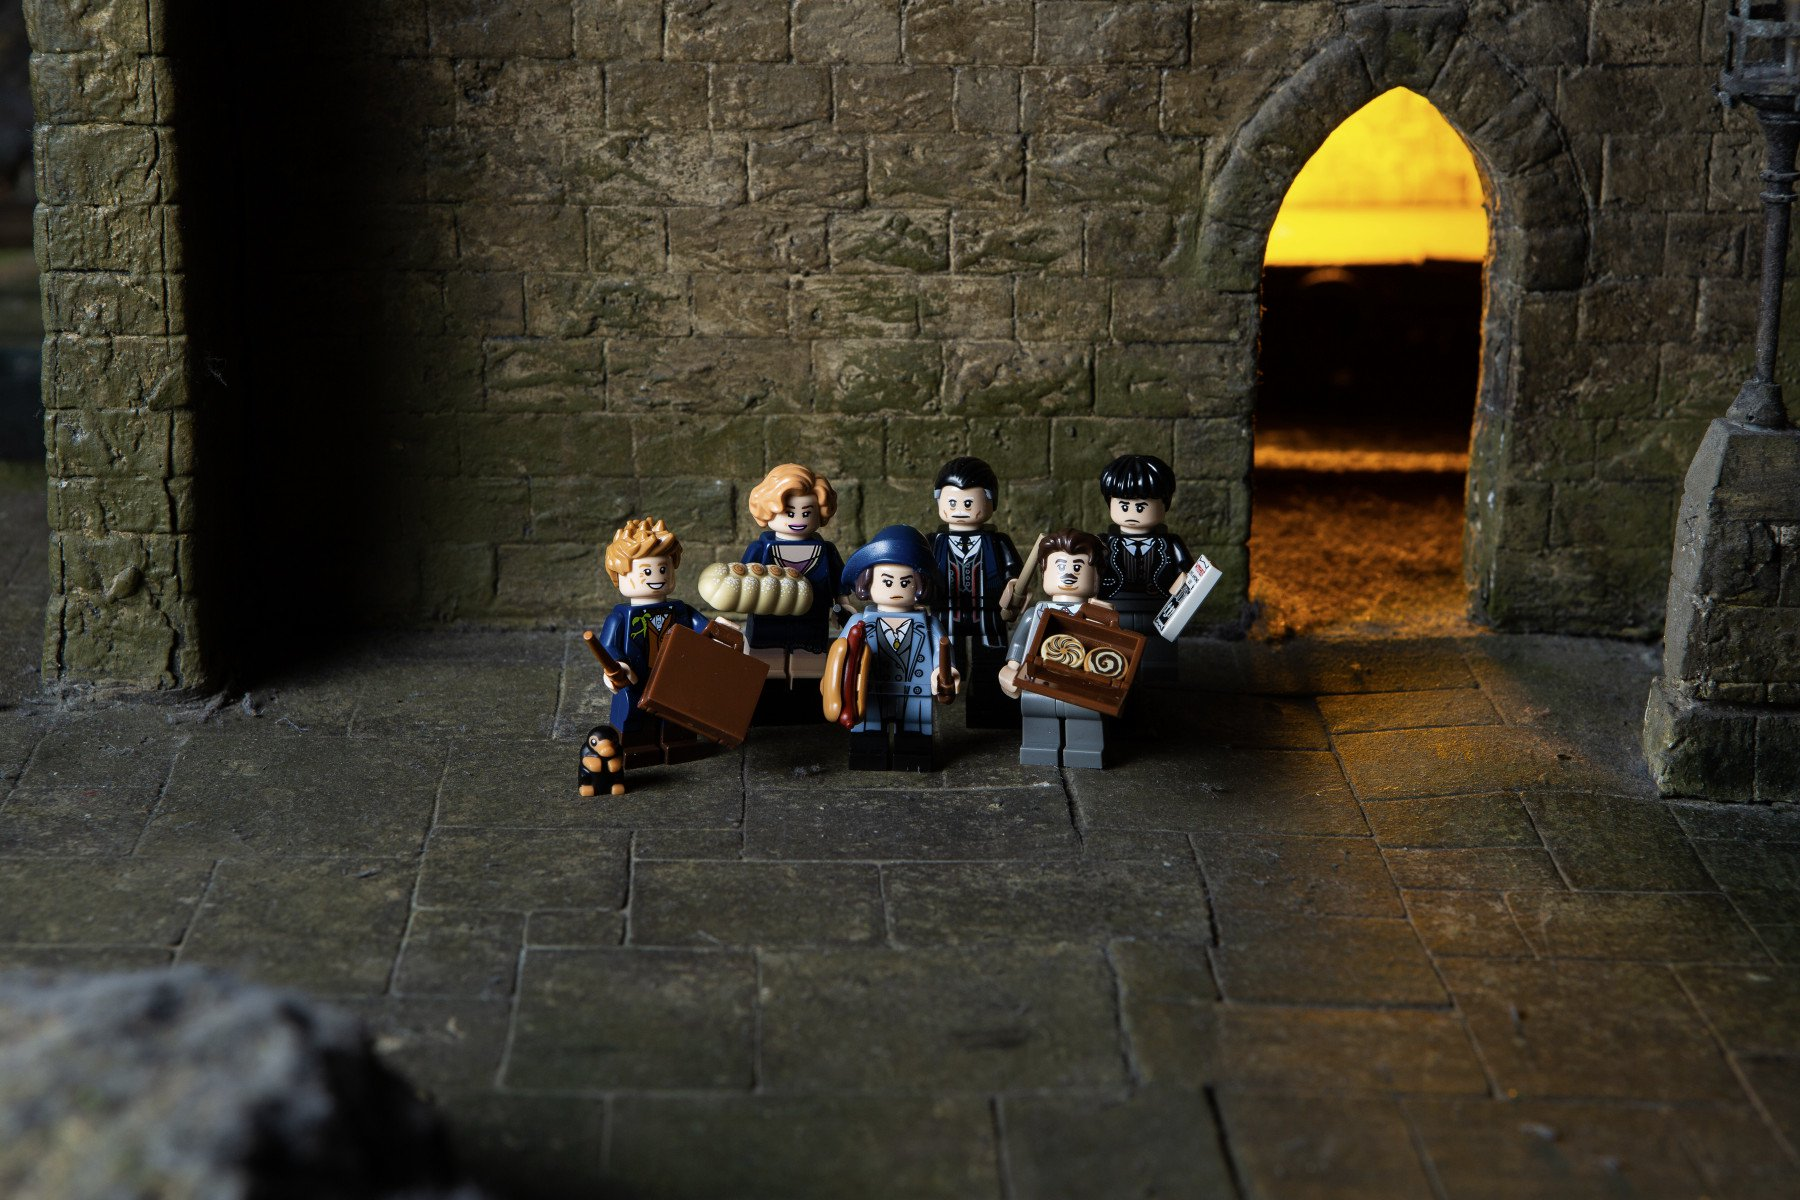 LEGO_WWHP_harry potter cmf 71022 04